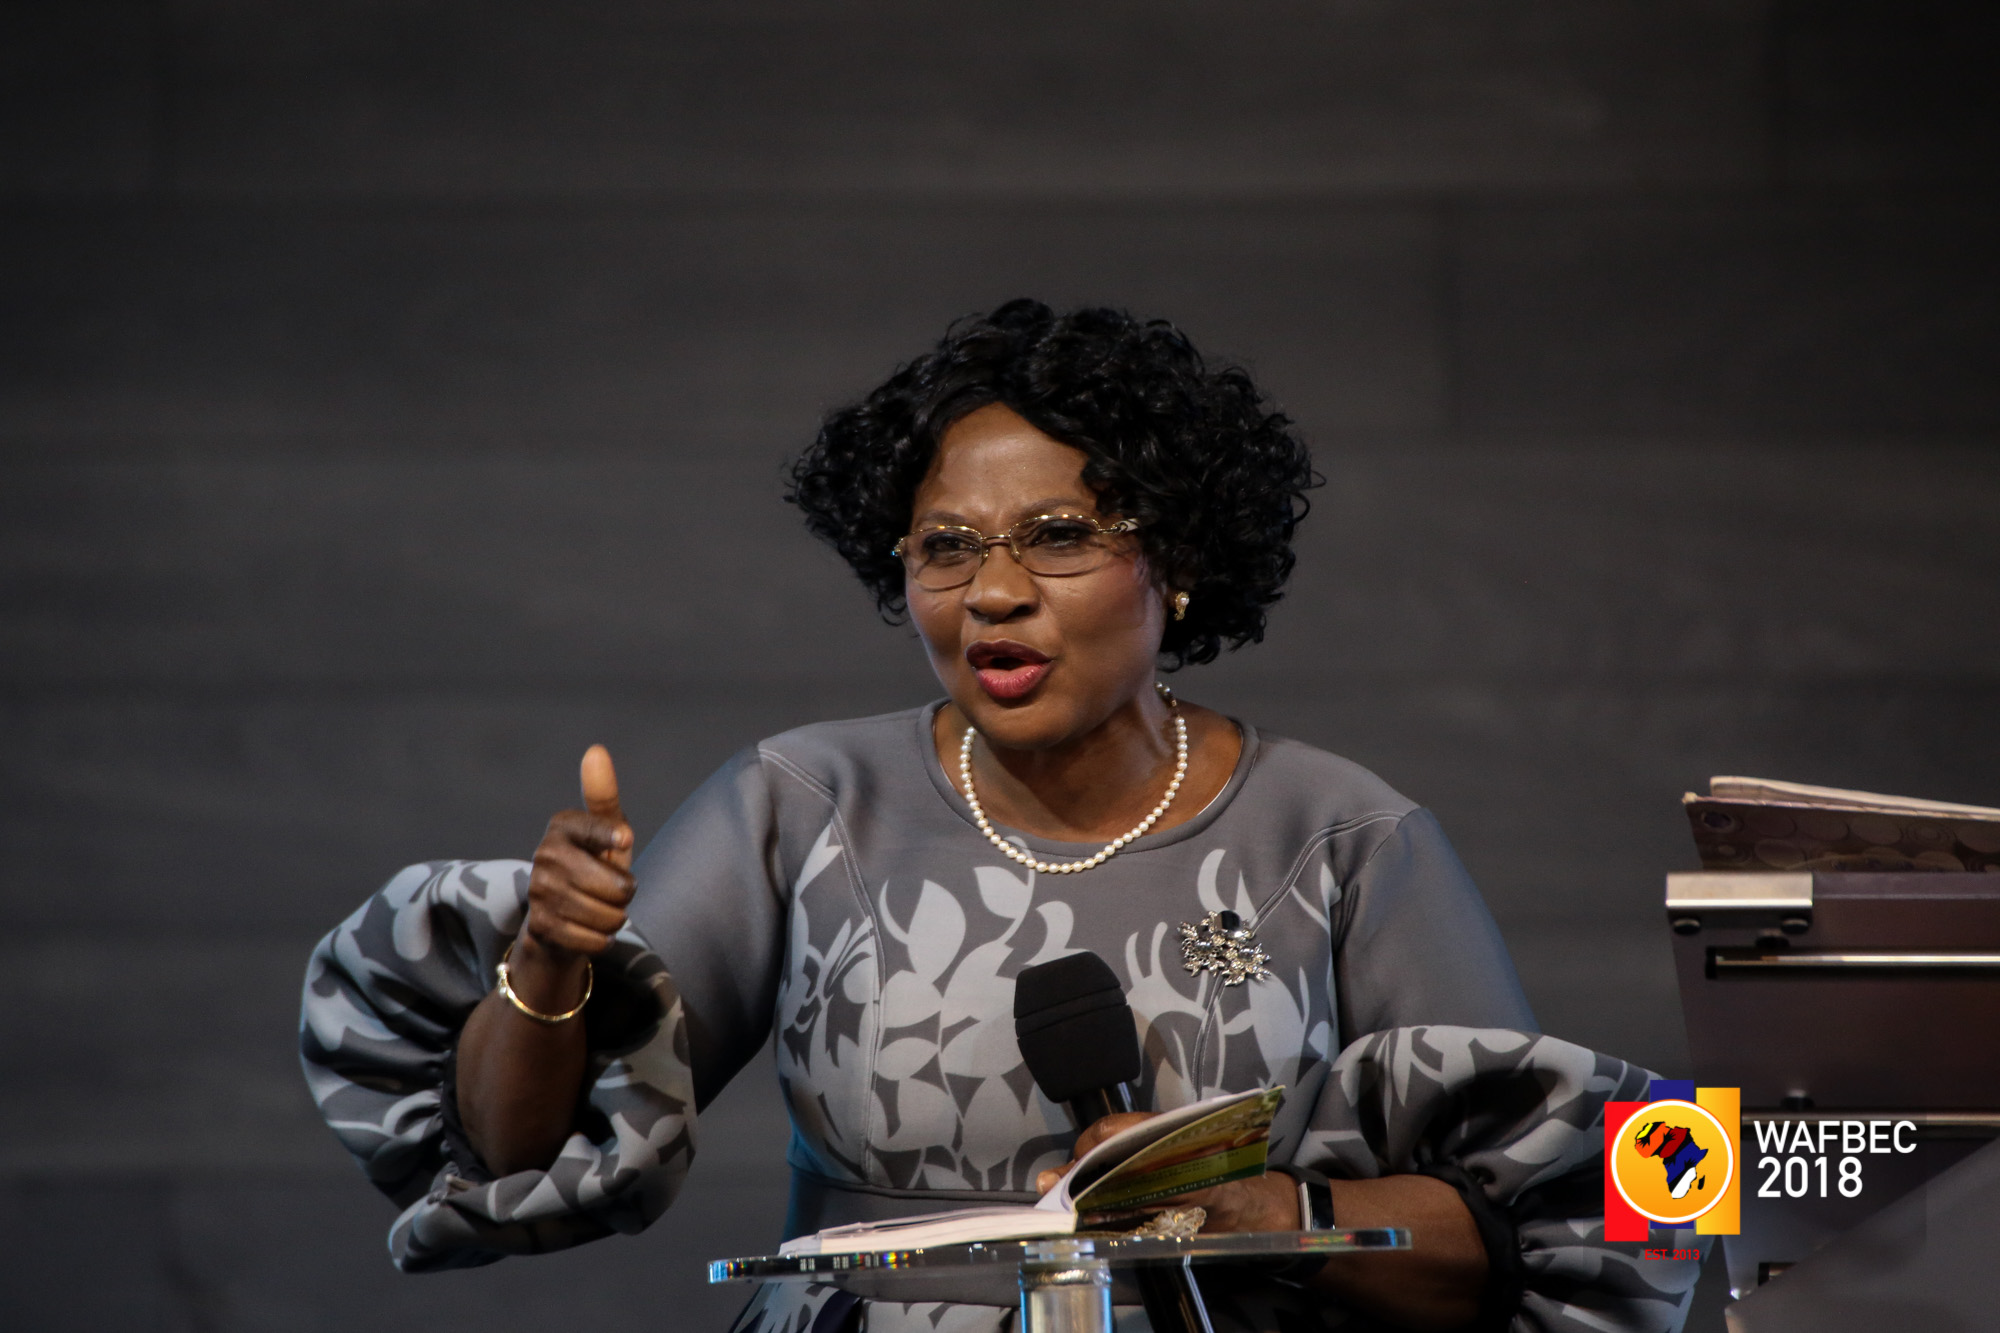 WAFBEC 2018 – Day 7 (Afternoon Session 1) with Pastor Sarah Omakwu